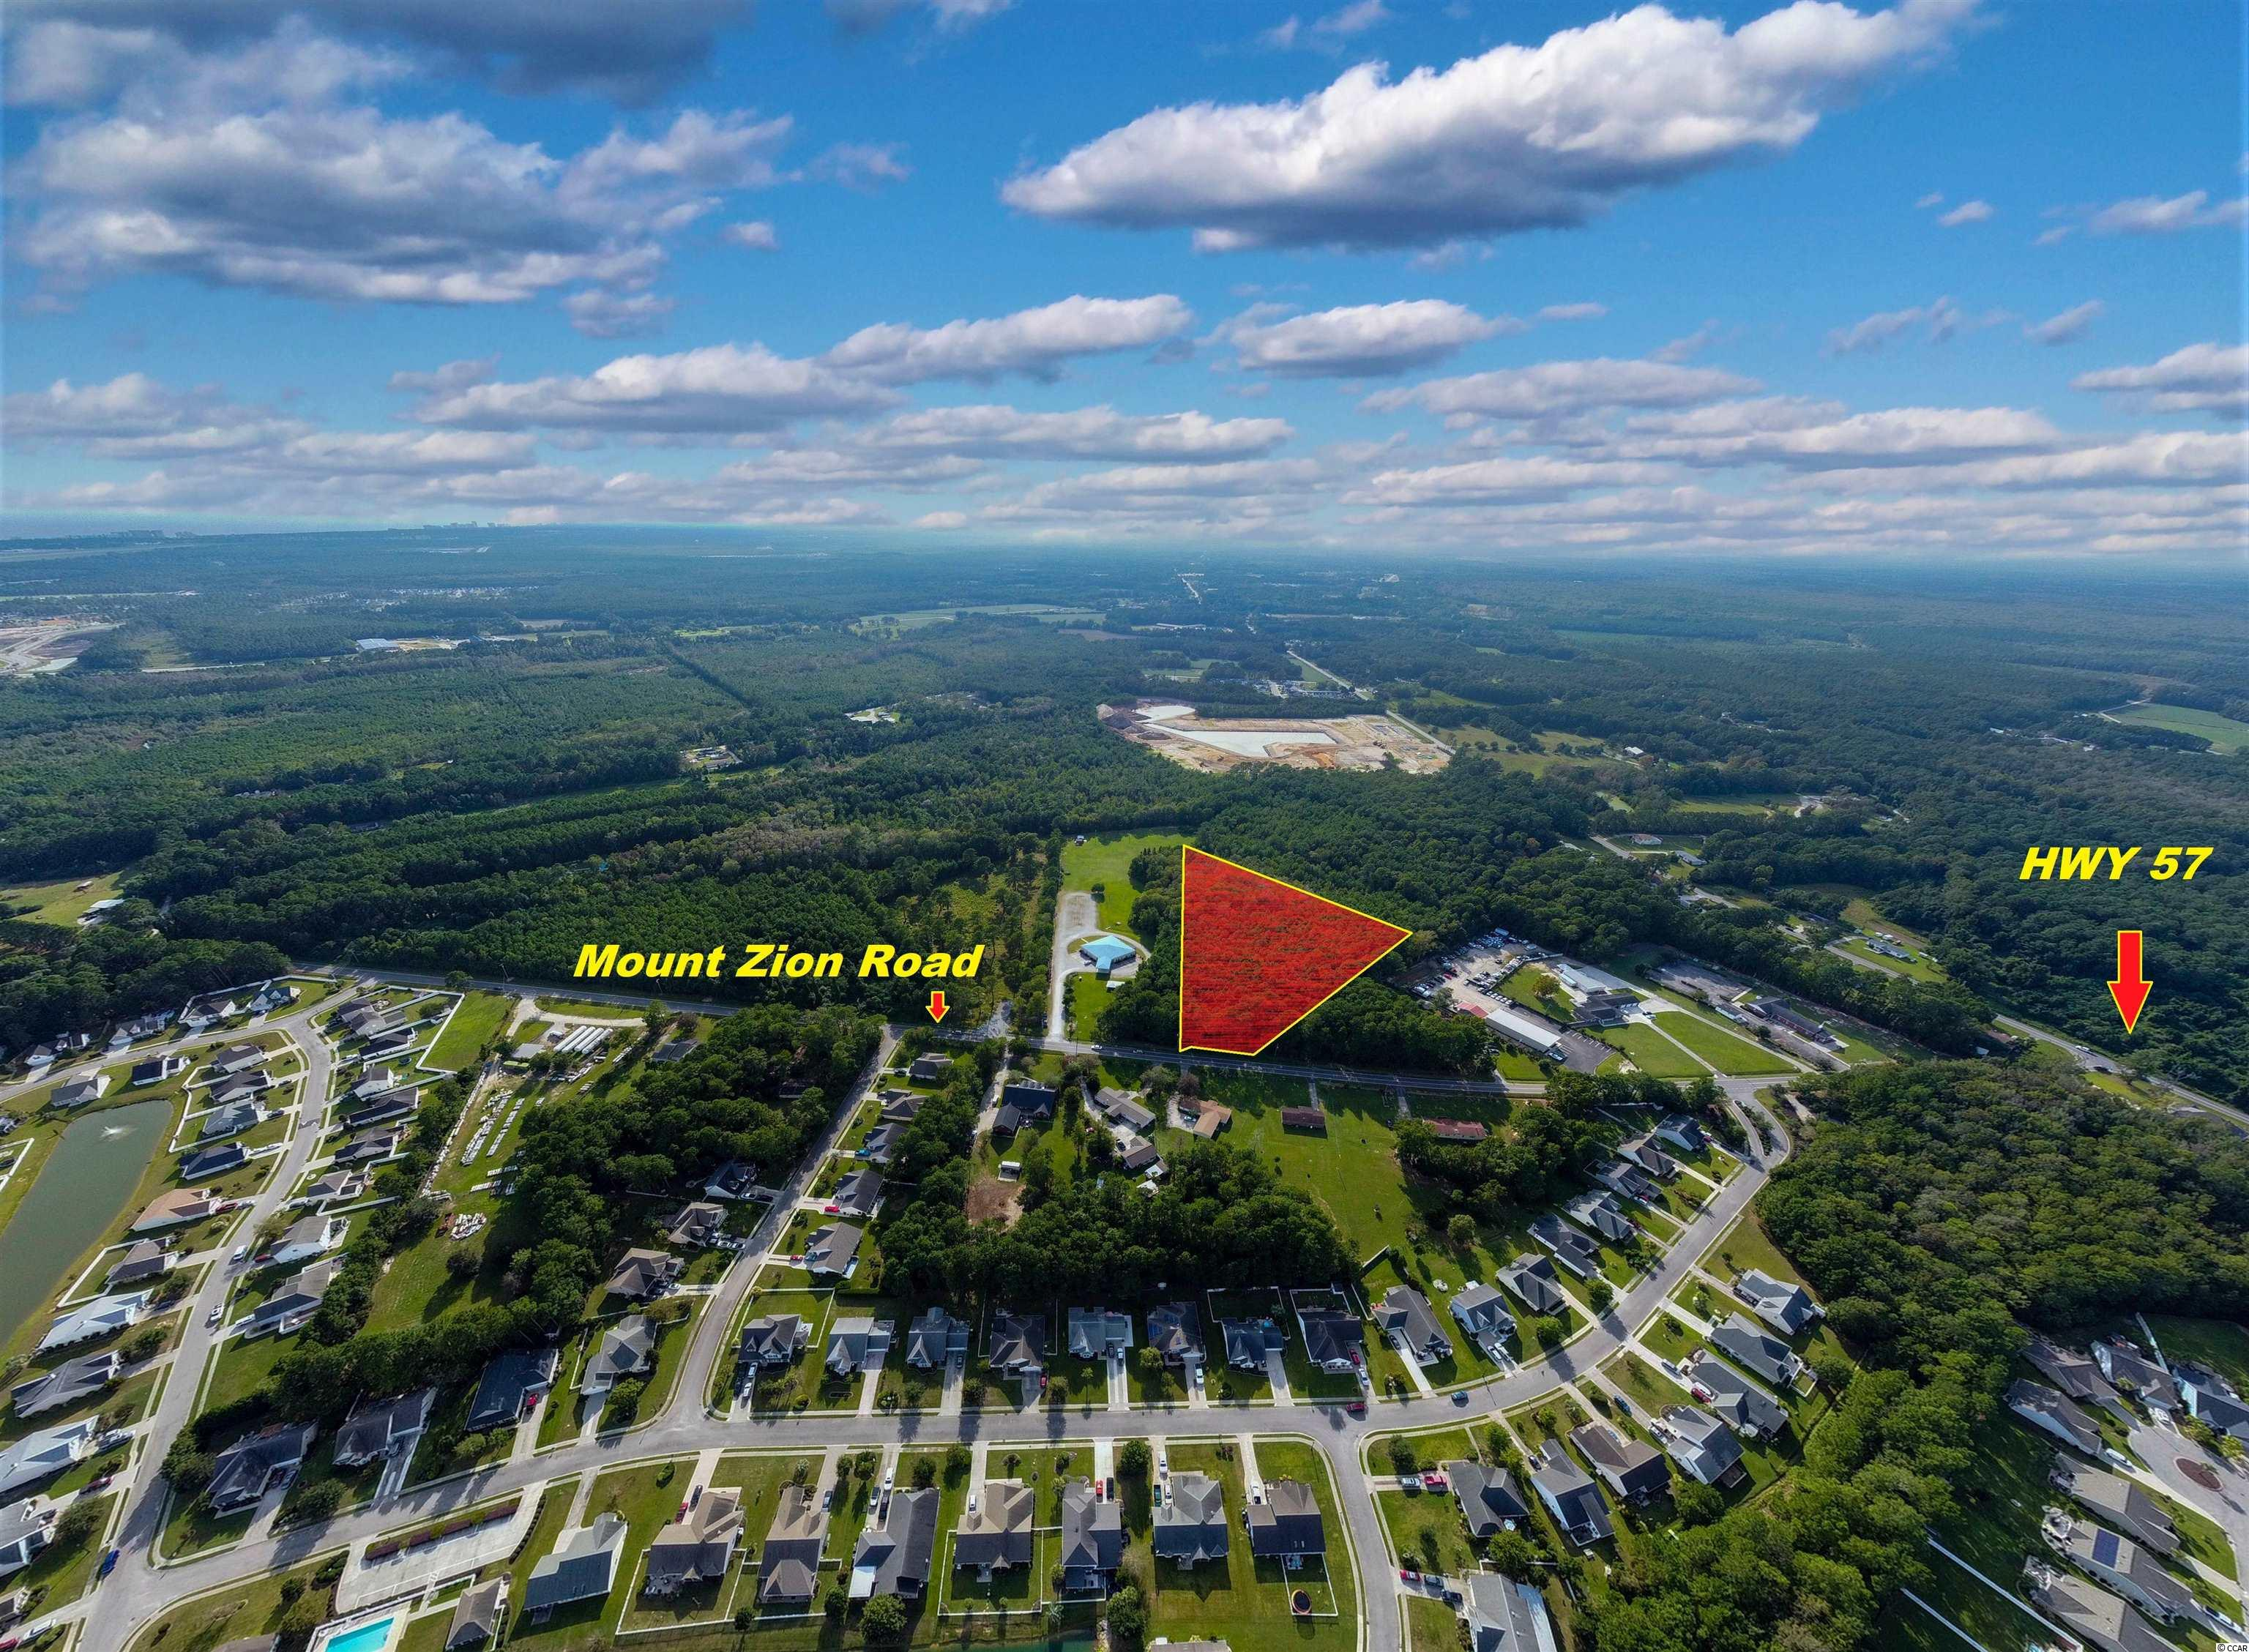 THE PERFECT TRACT OF LAND FOR RESIDENTIAL DEVELOPMENT WITH APPROXIMATELY 200 FEET HIGHWAY FRONTAGE NEAR THE BEAUTIFUL WATERFALLS SUBDIVISION ON MT. ZION ROAD LITTLE RIVER. AND WITHIN 5 MILES FROM THE OCEAN AND THE BEAUTIFUL CITY OF NORTH MYRTLE. ENJOY THE CLOSE CONVENIENCE OF SHOPPING MALLS, RESTAURANTS, HUGE SPORTS, AND PARK CENTERS, LIVE OPEN-AIR VENUES, ENTERTAINMENT, AND ATTRACTIONS THAT WILL KEEP YOU EXPLORING  YOUR NEVER-ENDING WONDERFUL LIFE AT THE BEACH.